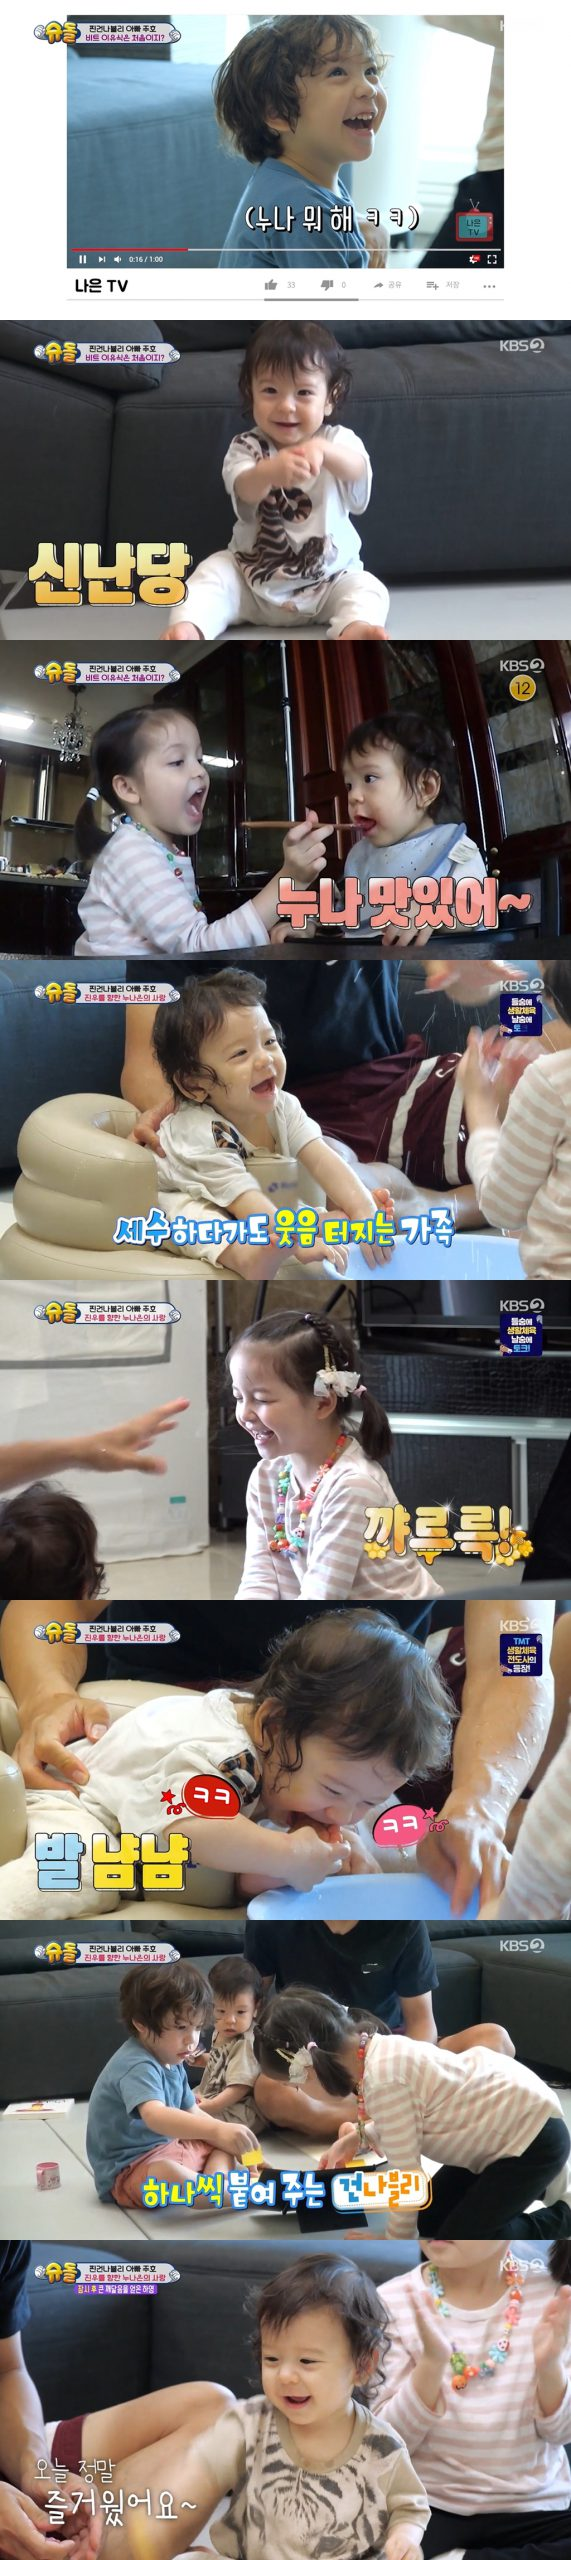 'The Return of Superman' Na-eun, Jinwoo's parenting expert feeding baby food... Lovely siblings